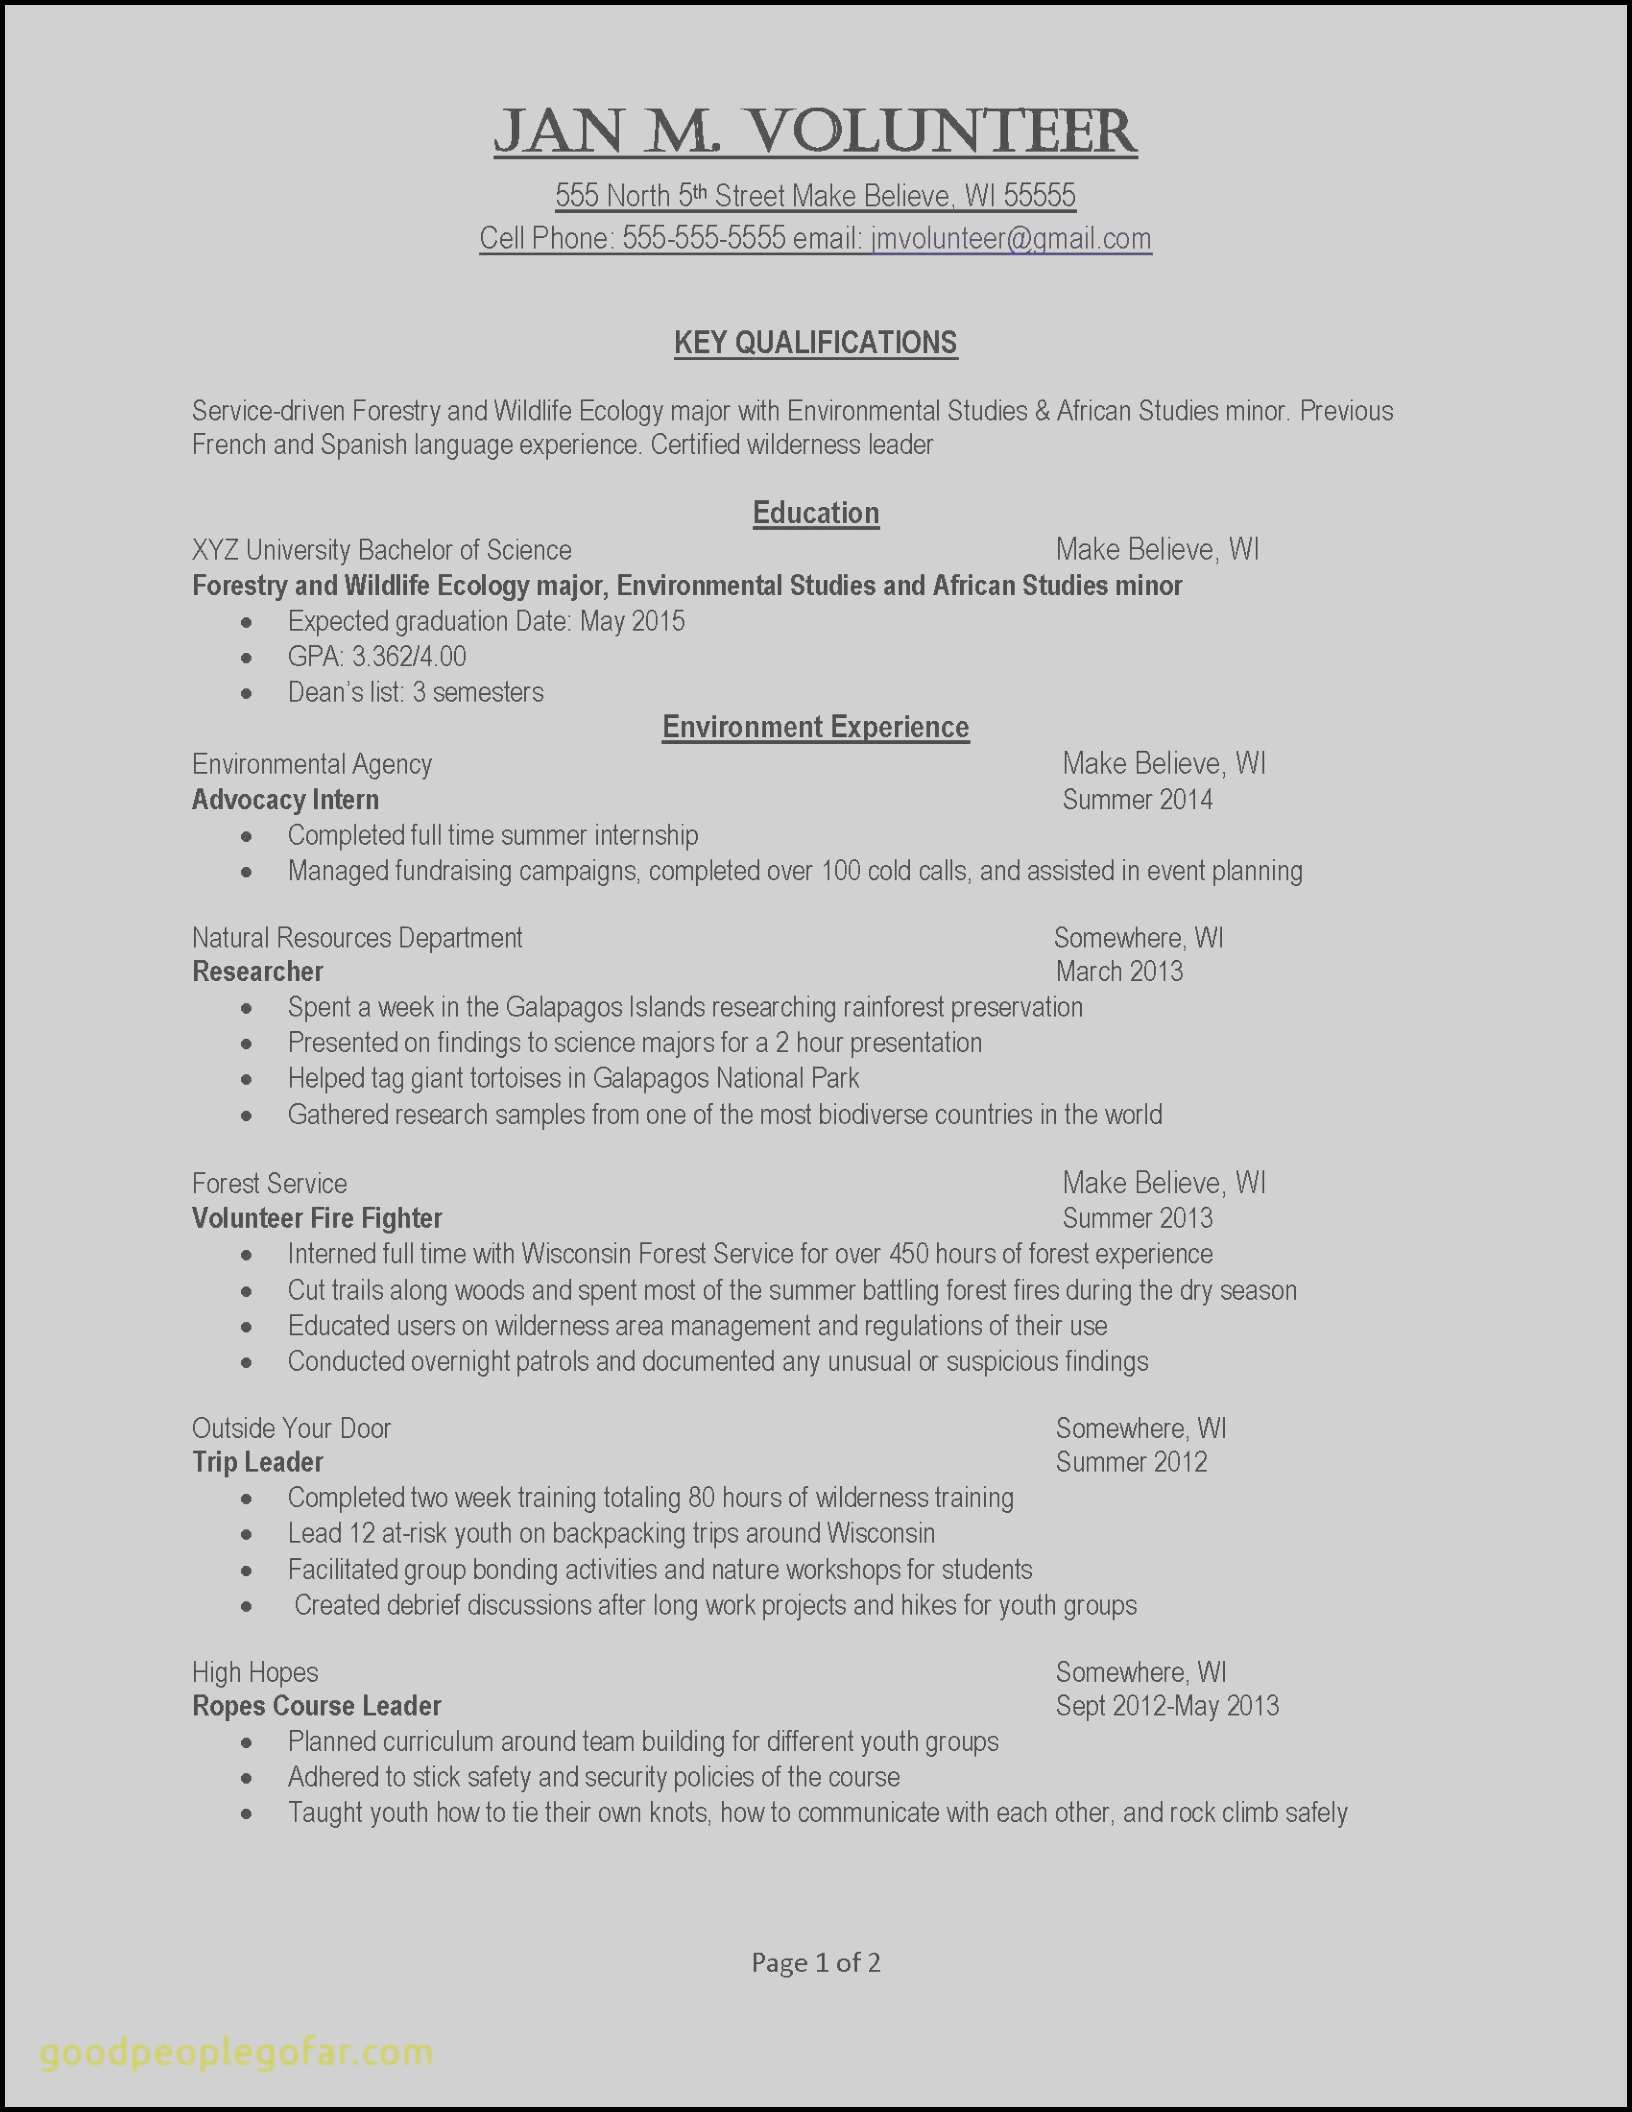 Cyber Security Resume - Cyber Security Resume Examples Stunning Example Job Resume Awesome